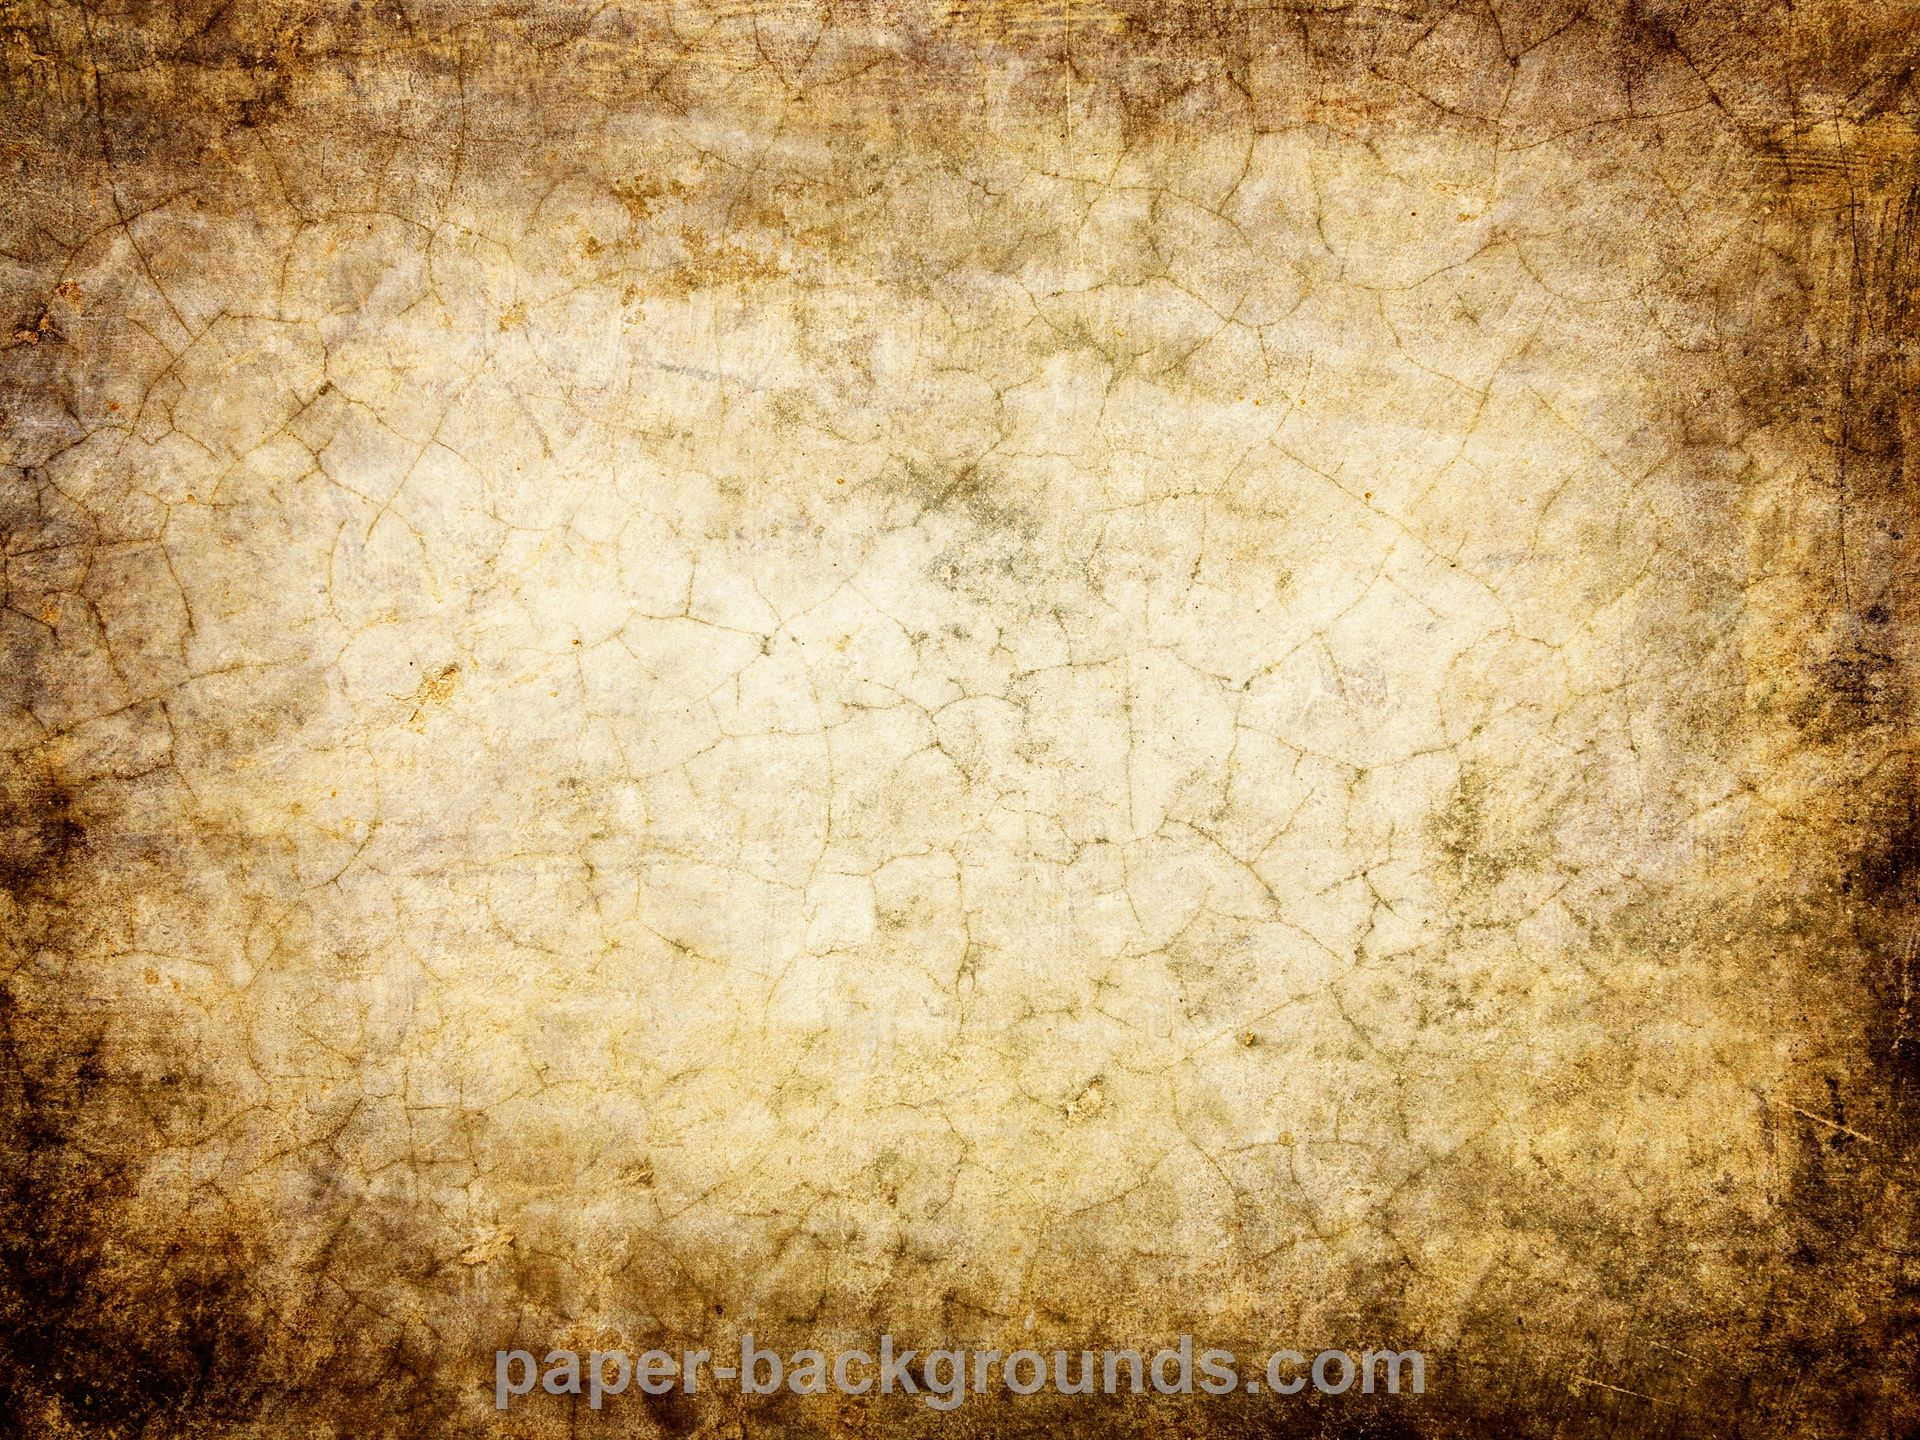 Tumblr Vintage Backgrounds wallpaper 1600x1200 35119 1920x1440